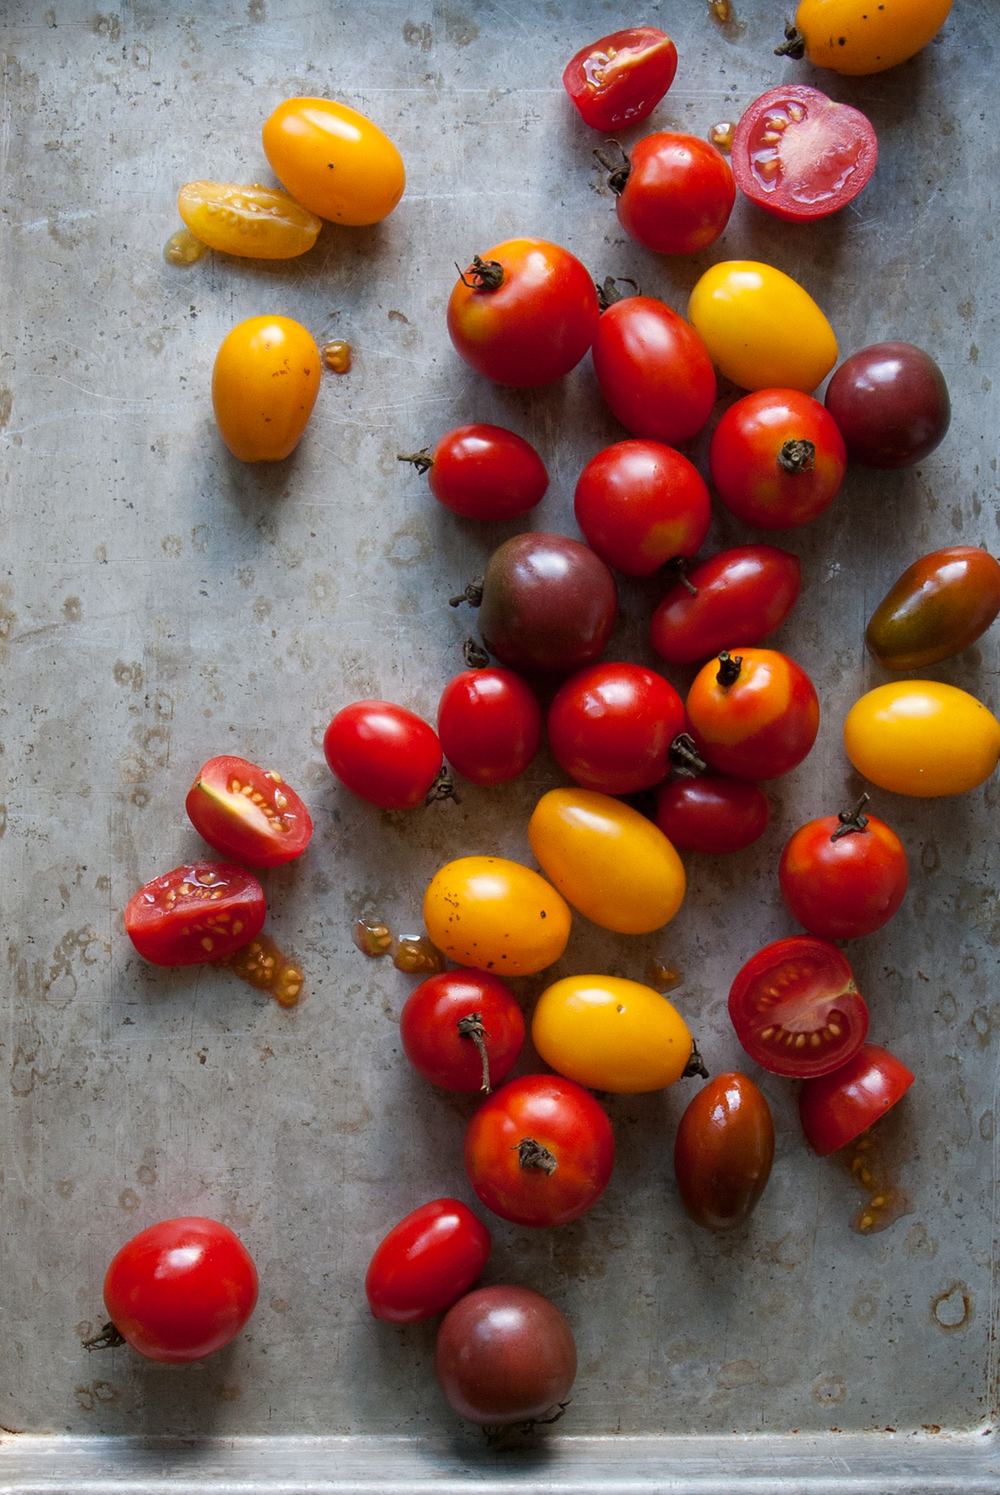 Sprig_of_thyme_Tomato_Galette_Tomatoes.jpg